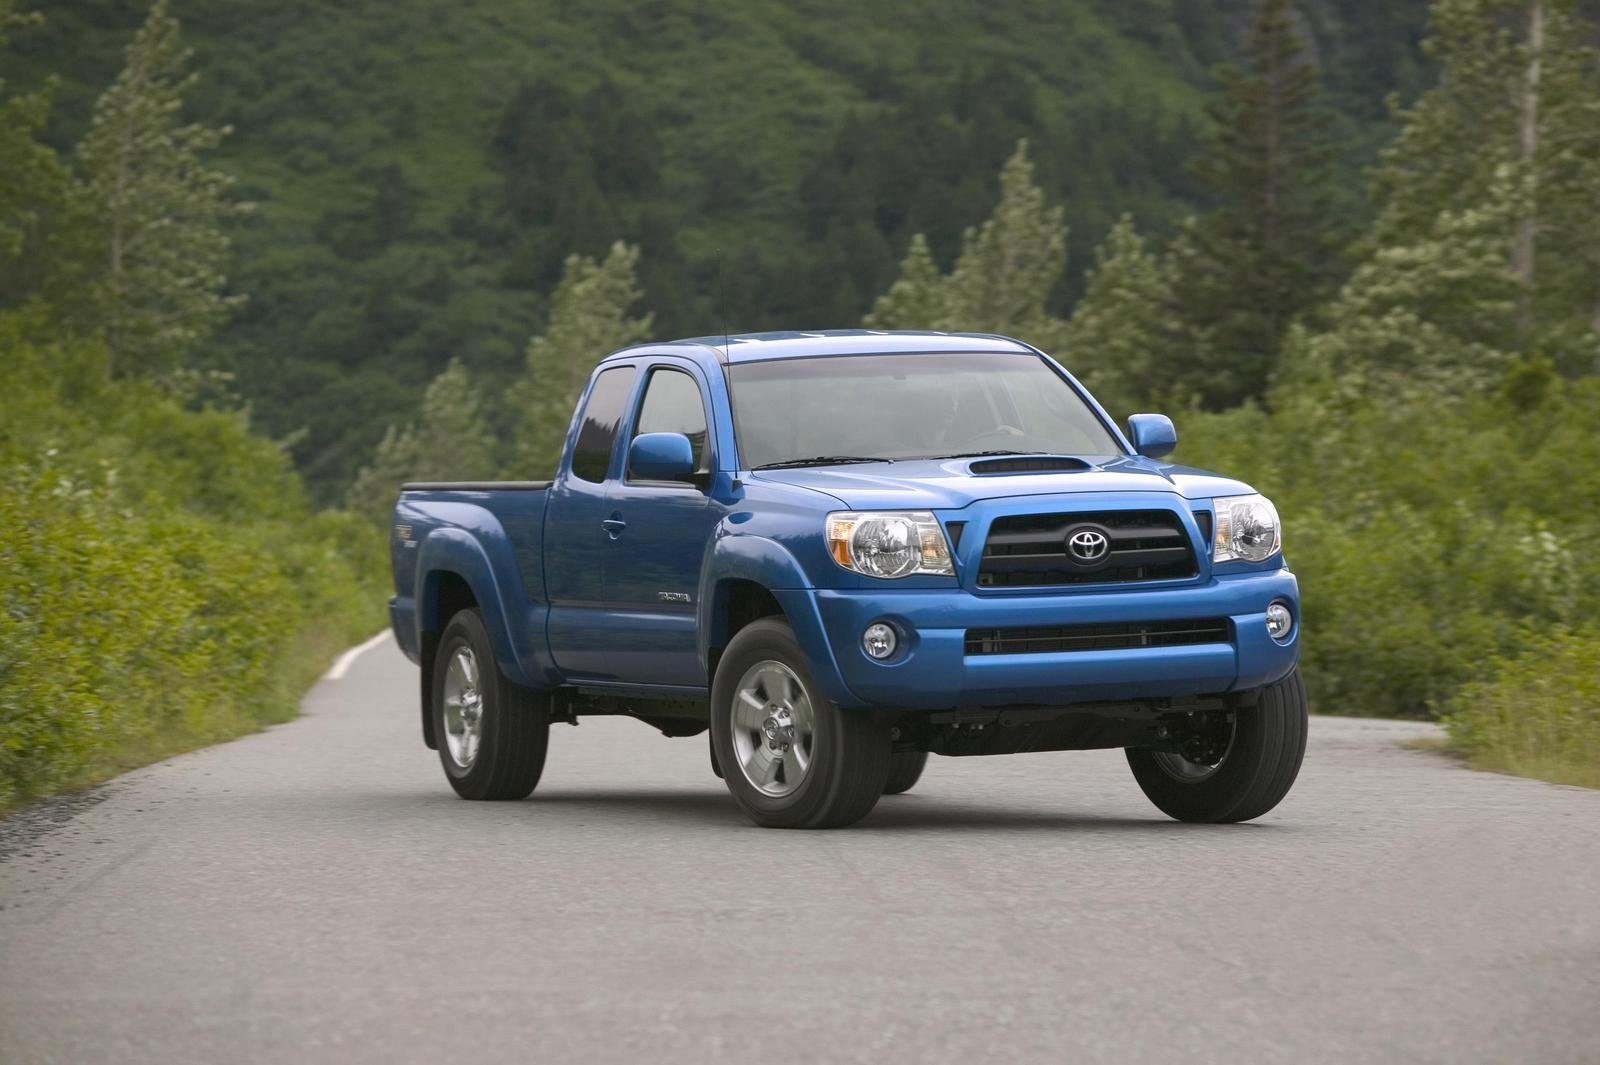 2009 toyota tacoma pricing announced picture 251388 car news top speed. Black Bedroom Furniture Sets. Home Design Ideas